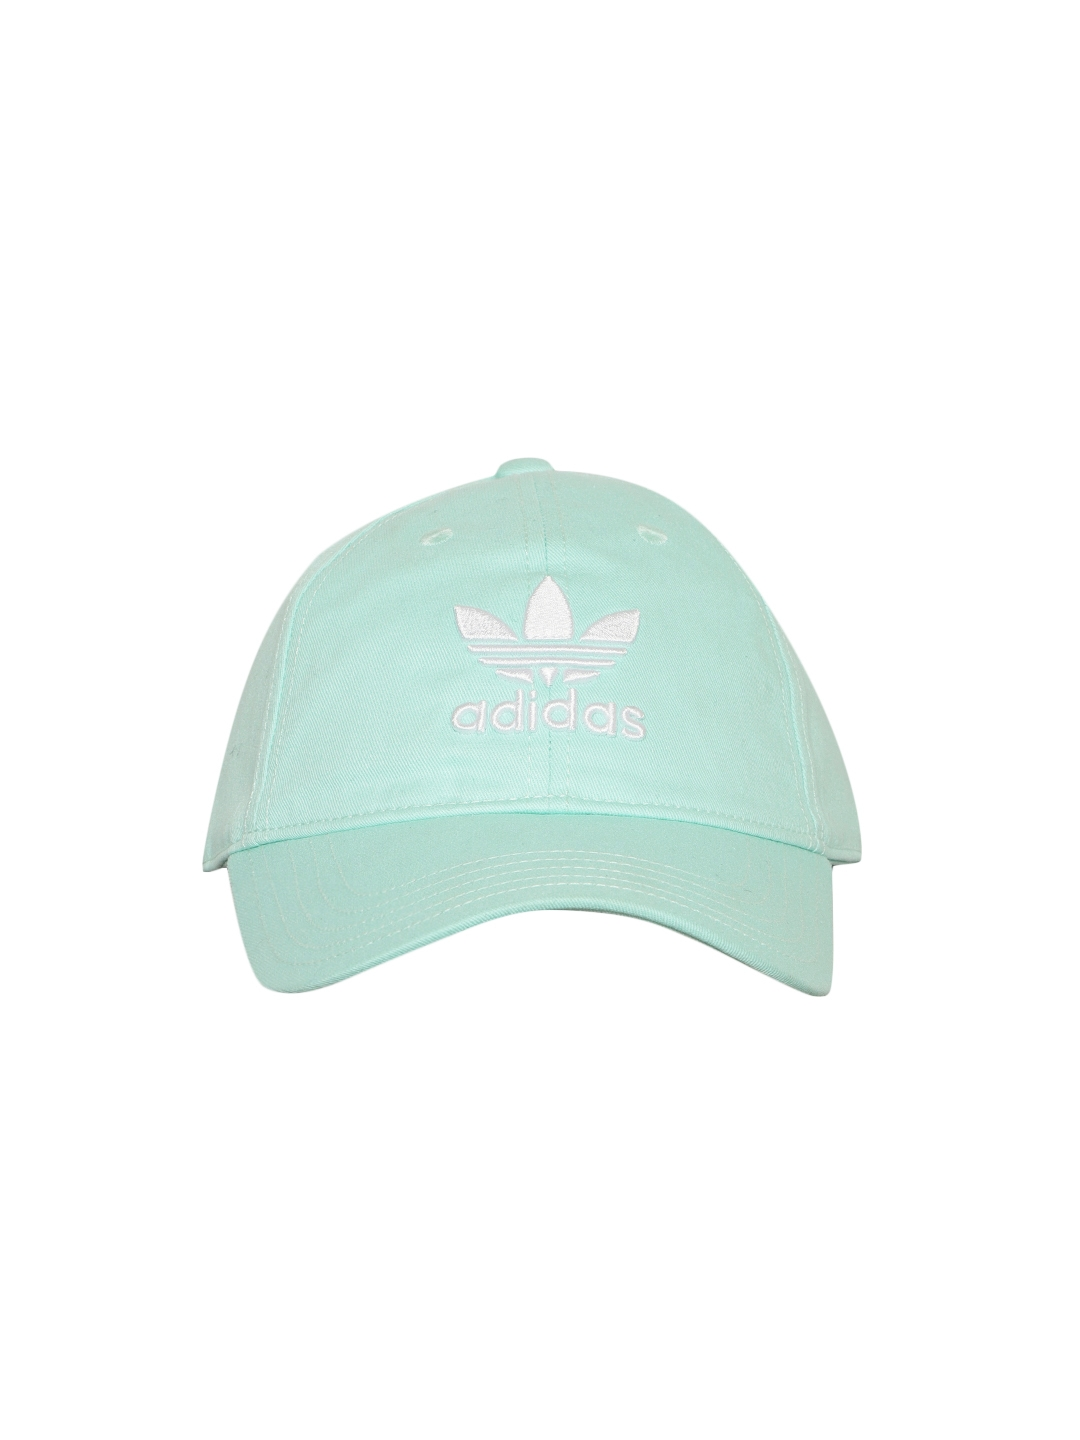 3b36e50f5cb Buy Adidas Originals Unisex Mint Green Trefoil Baseball Cap - Caps .